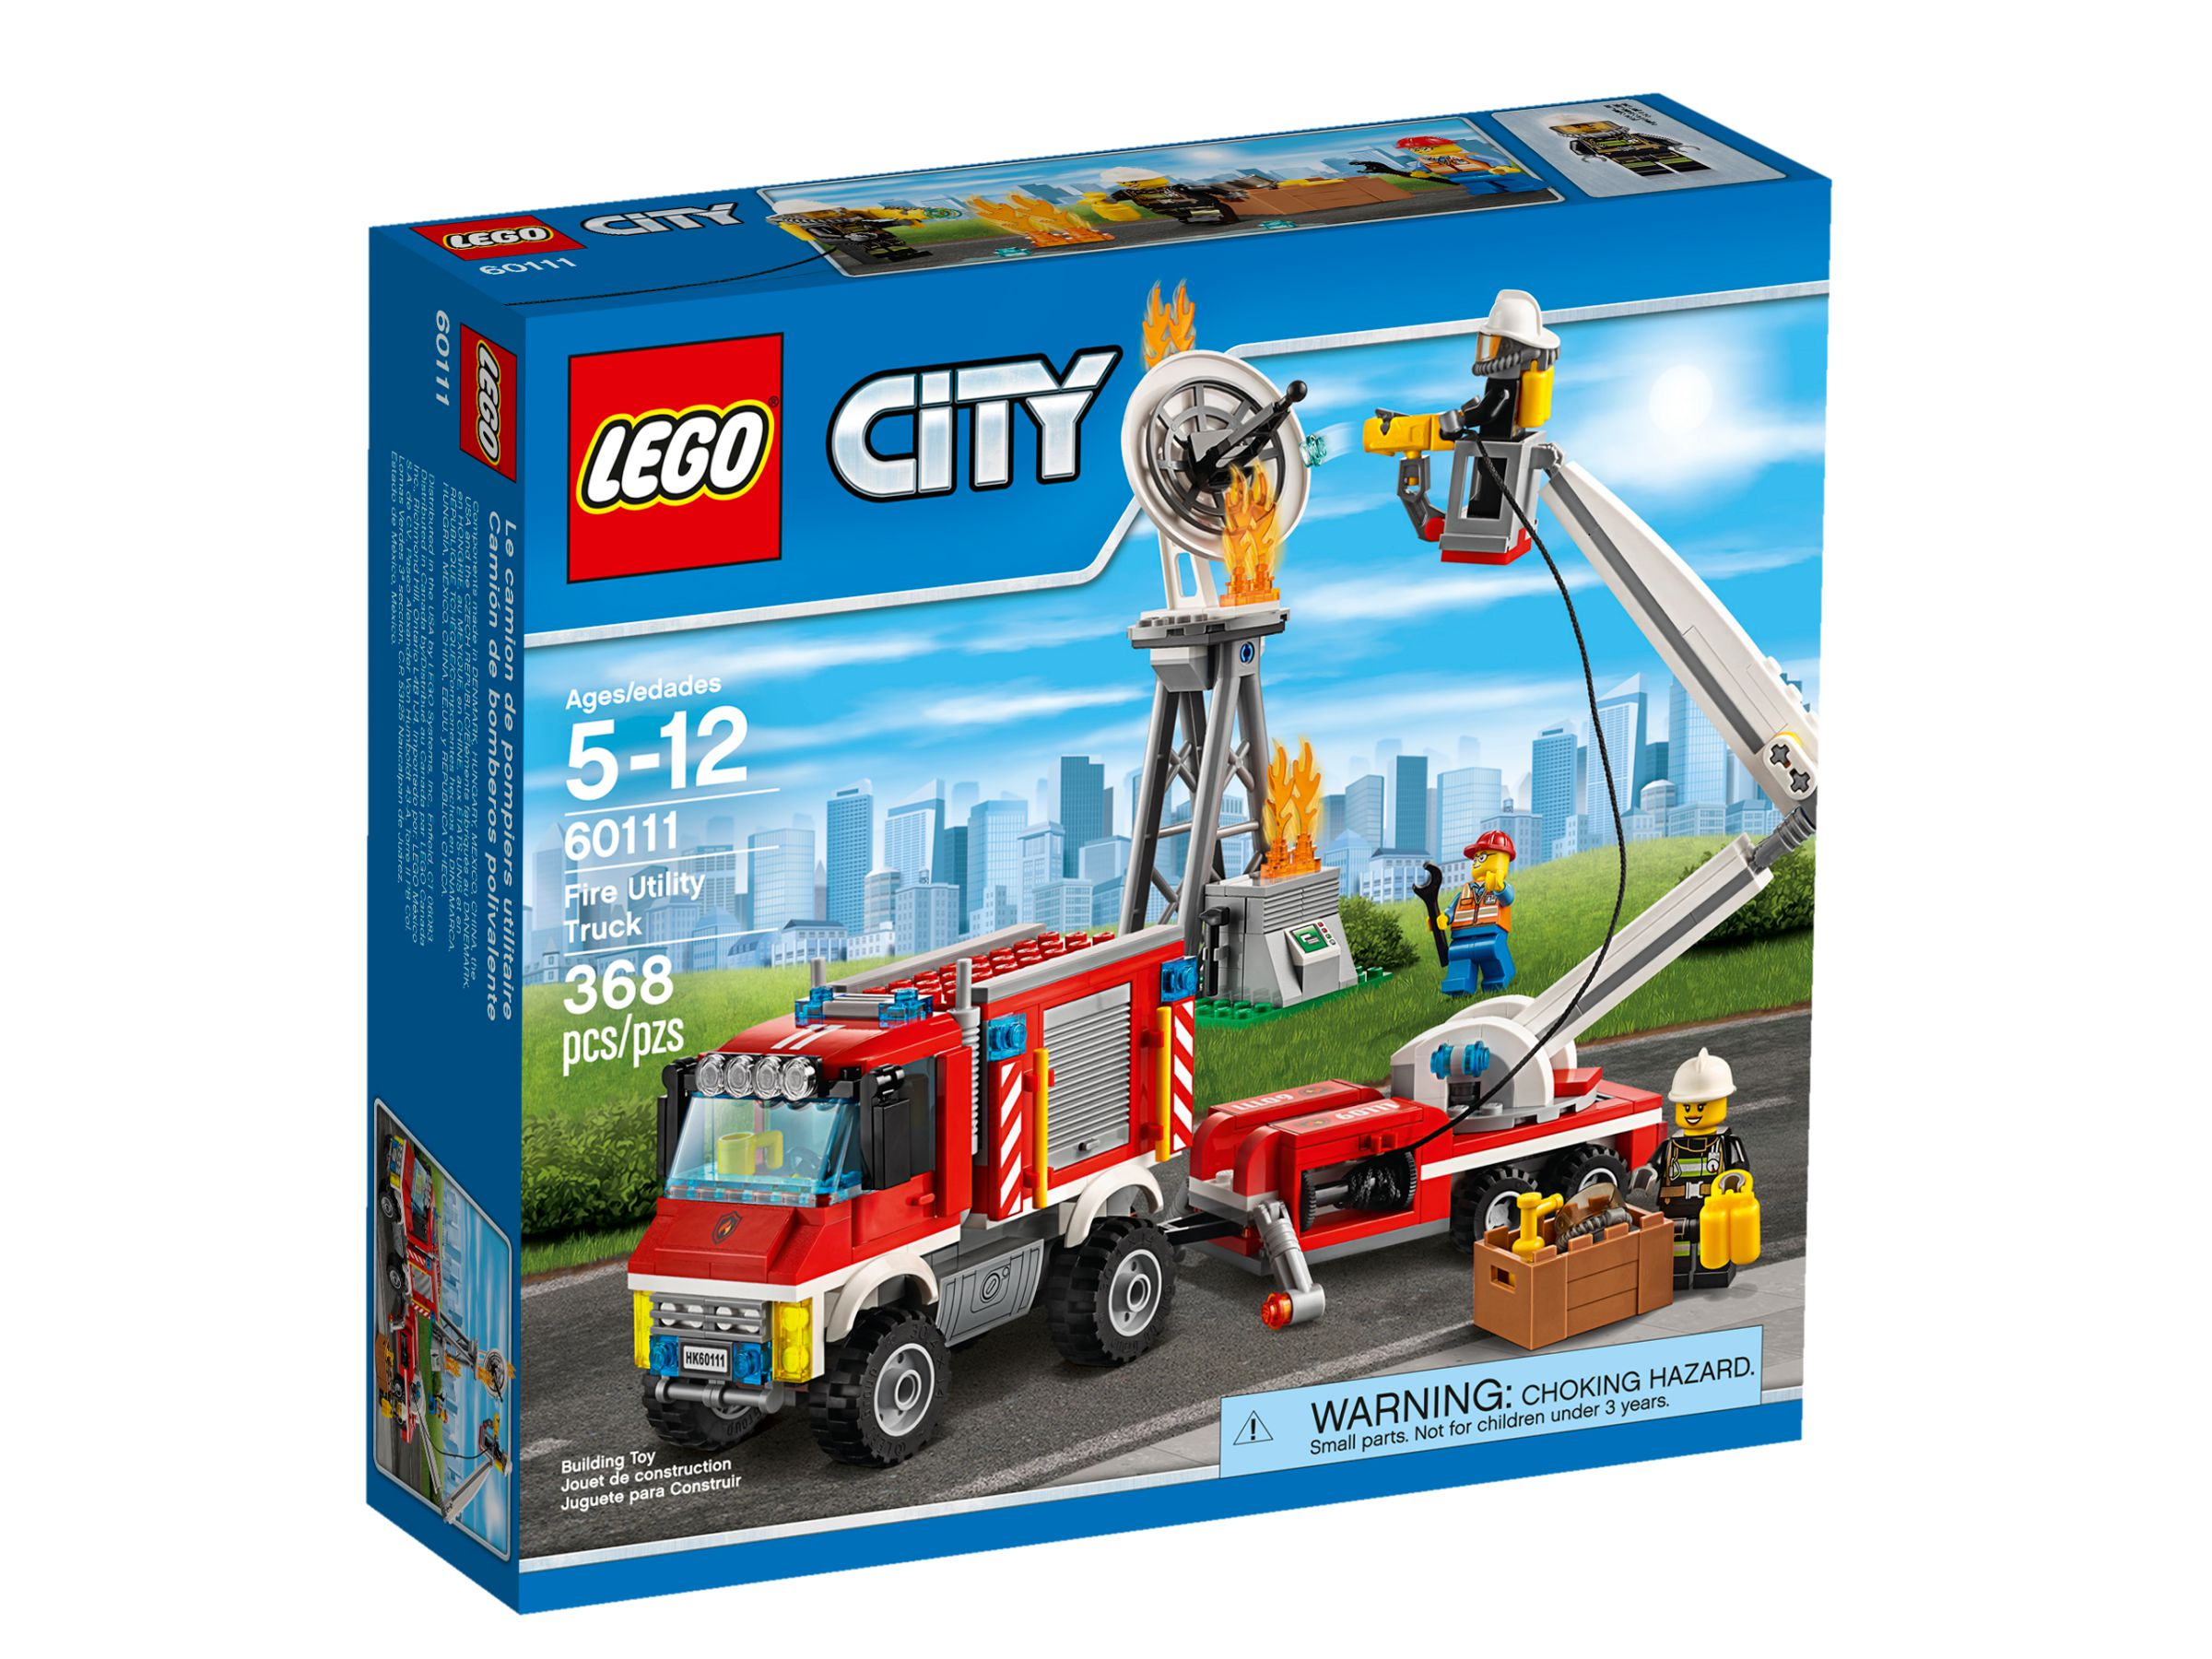 lego 60111 feuerwehr einsatzfahrzeug city 2016 fire utility truck brickmerge. Black Bedroom Furniture Sets. Home Design Ideas